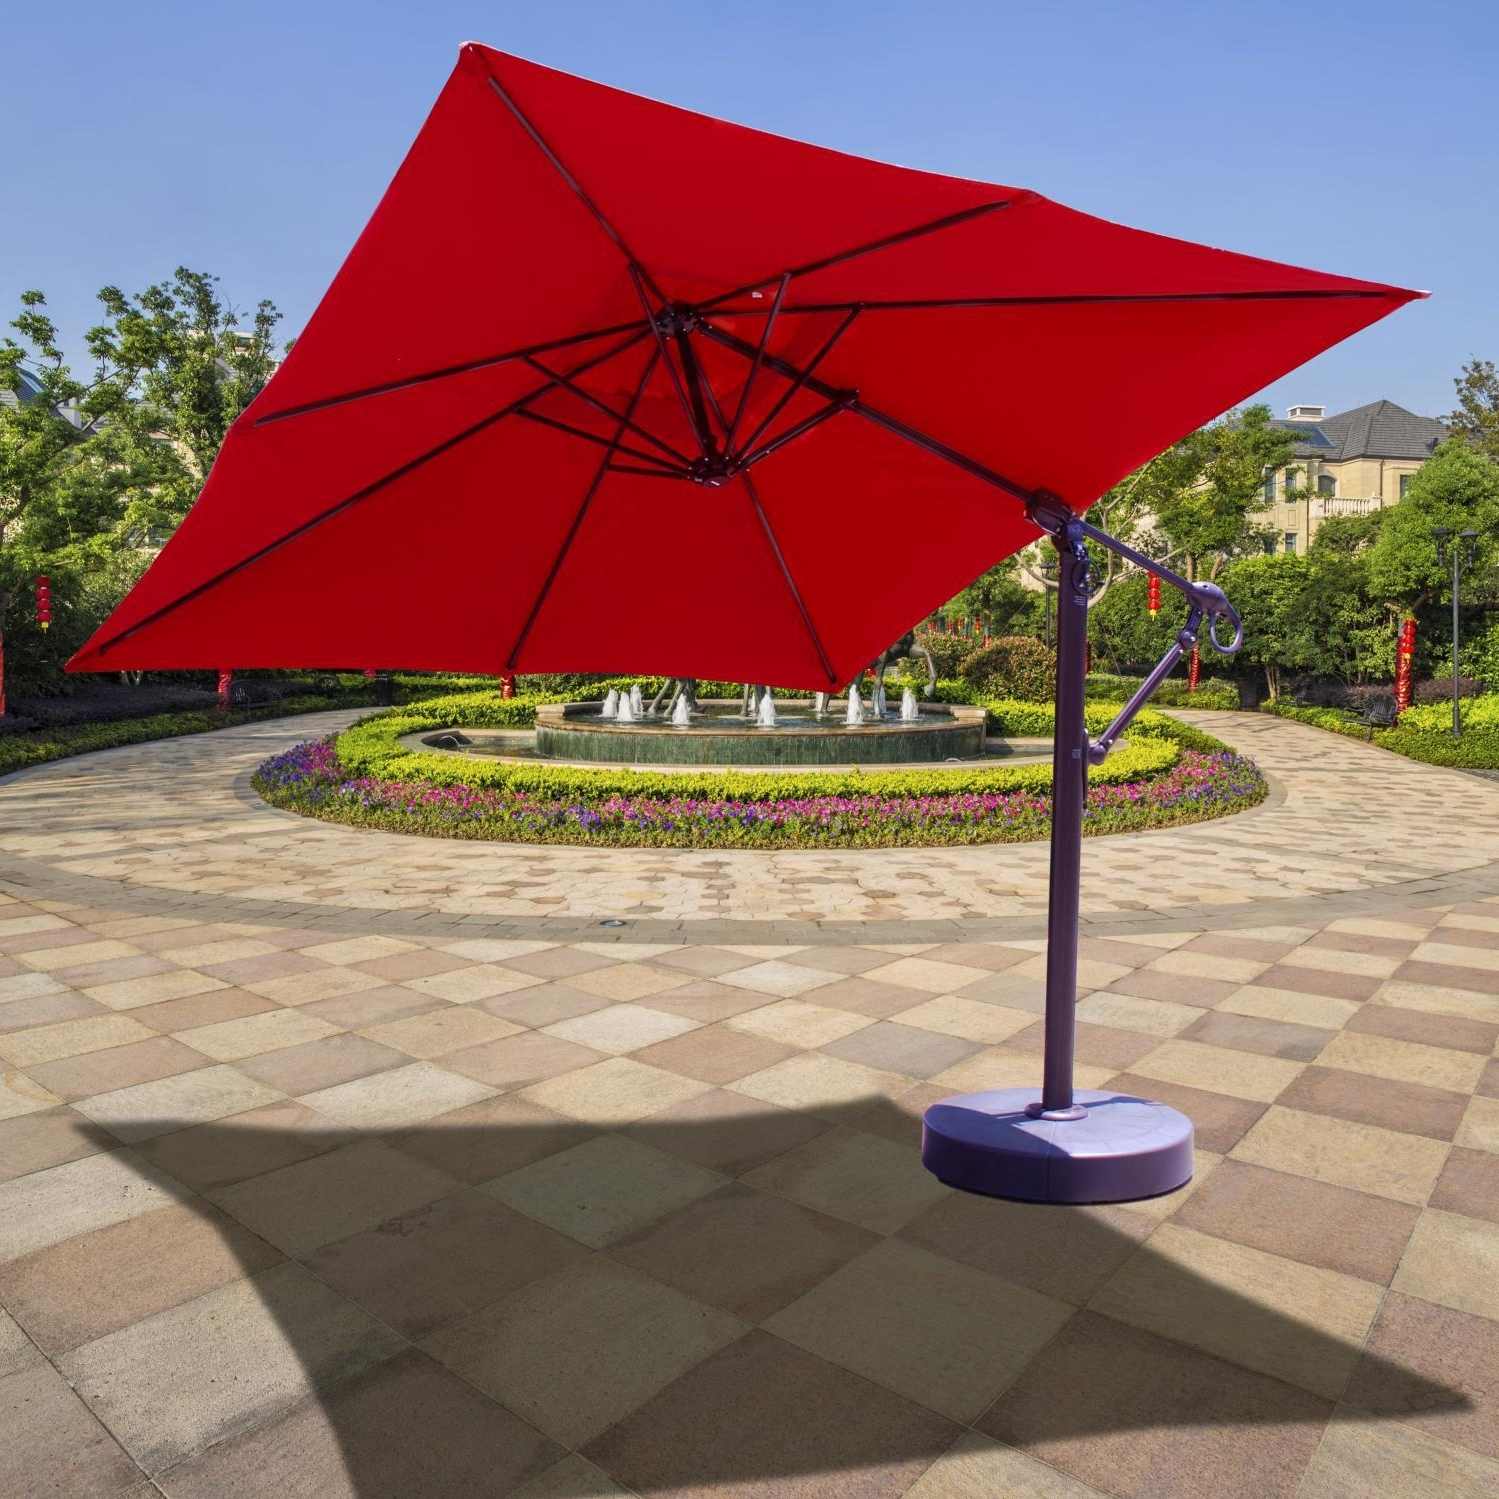 10 Ft Patio Umbrellas Regarding Best And Newest Galtech 10 Ft Aluminum Square Cantilever Patio Umbrella With Easy (Gallery 12 of 20)